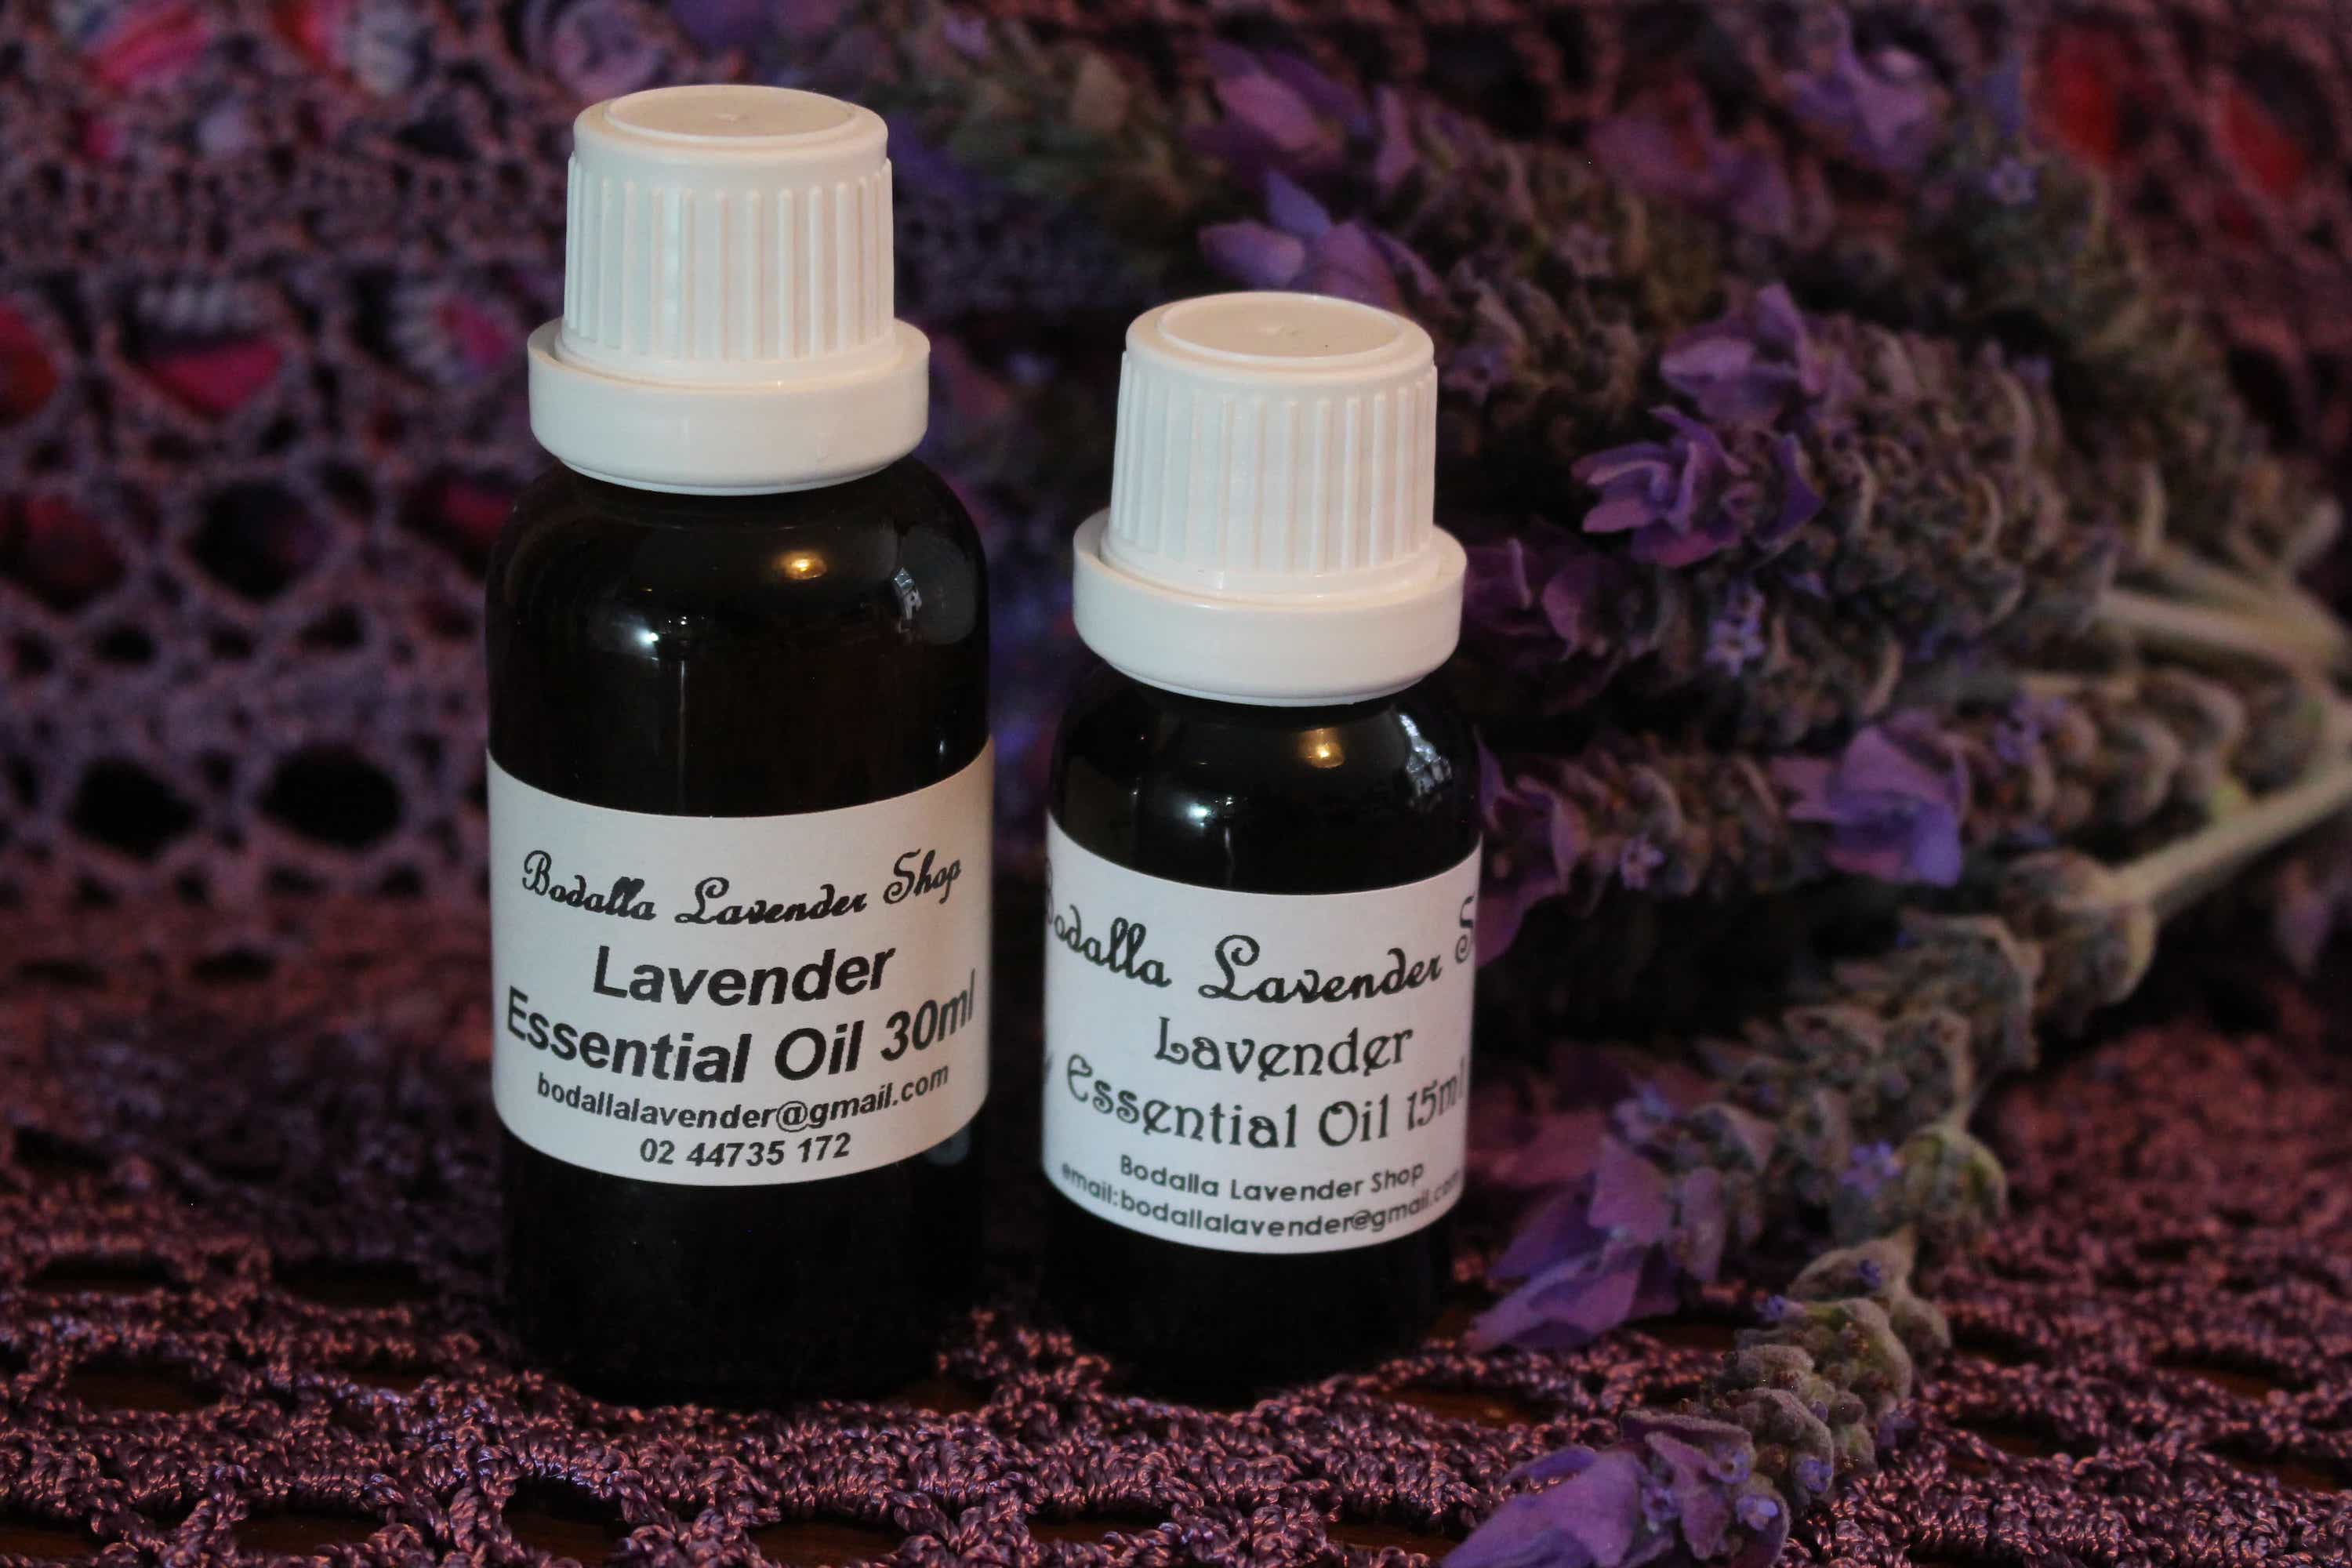 Photograph of an Lavender Essential Oil 15ml product